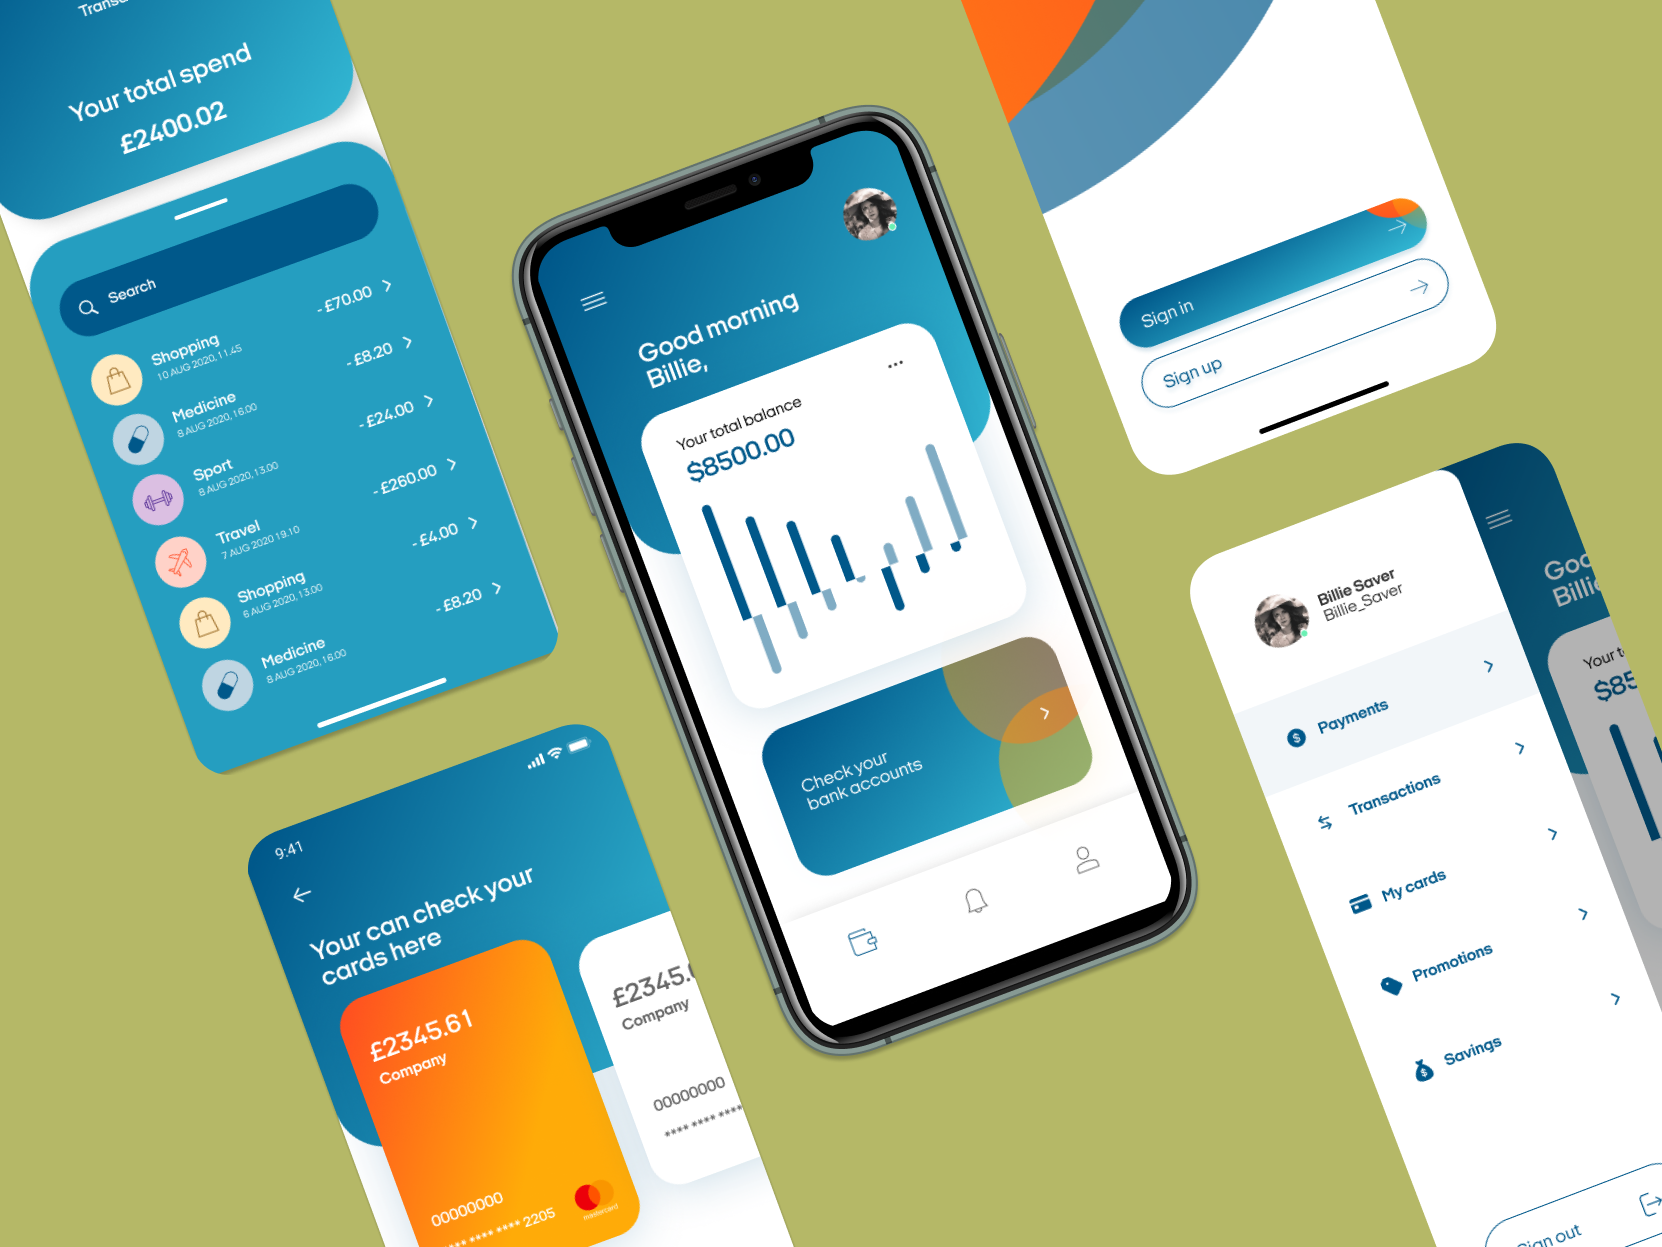 Screen shots of a financial technology app